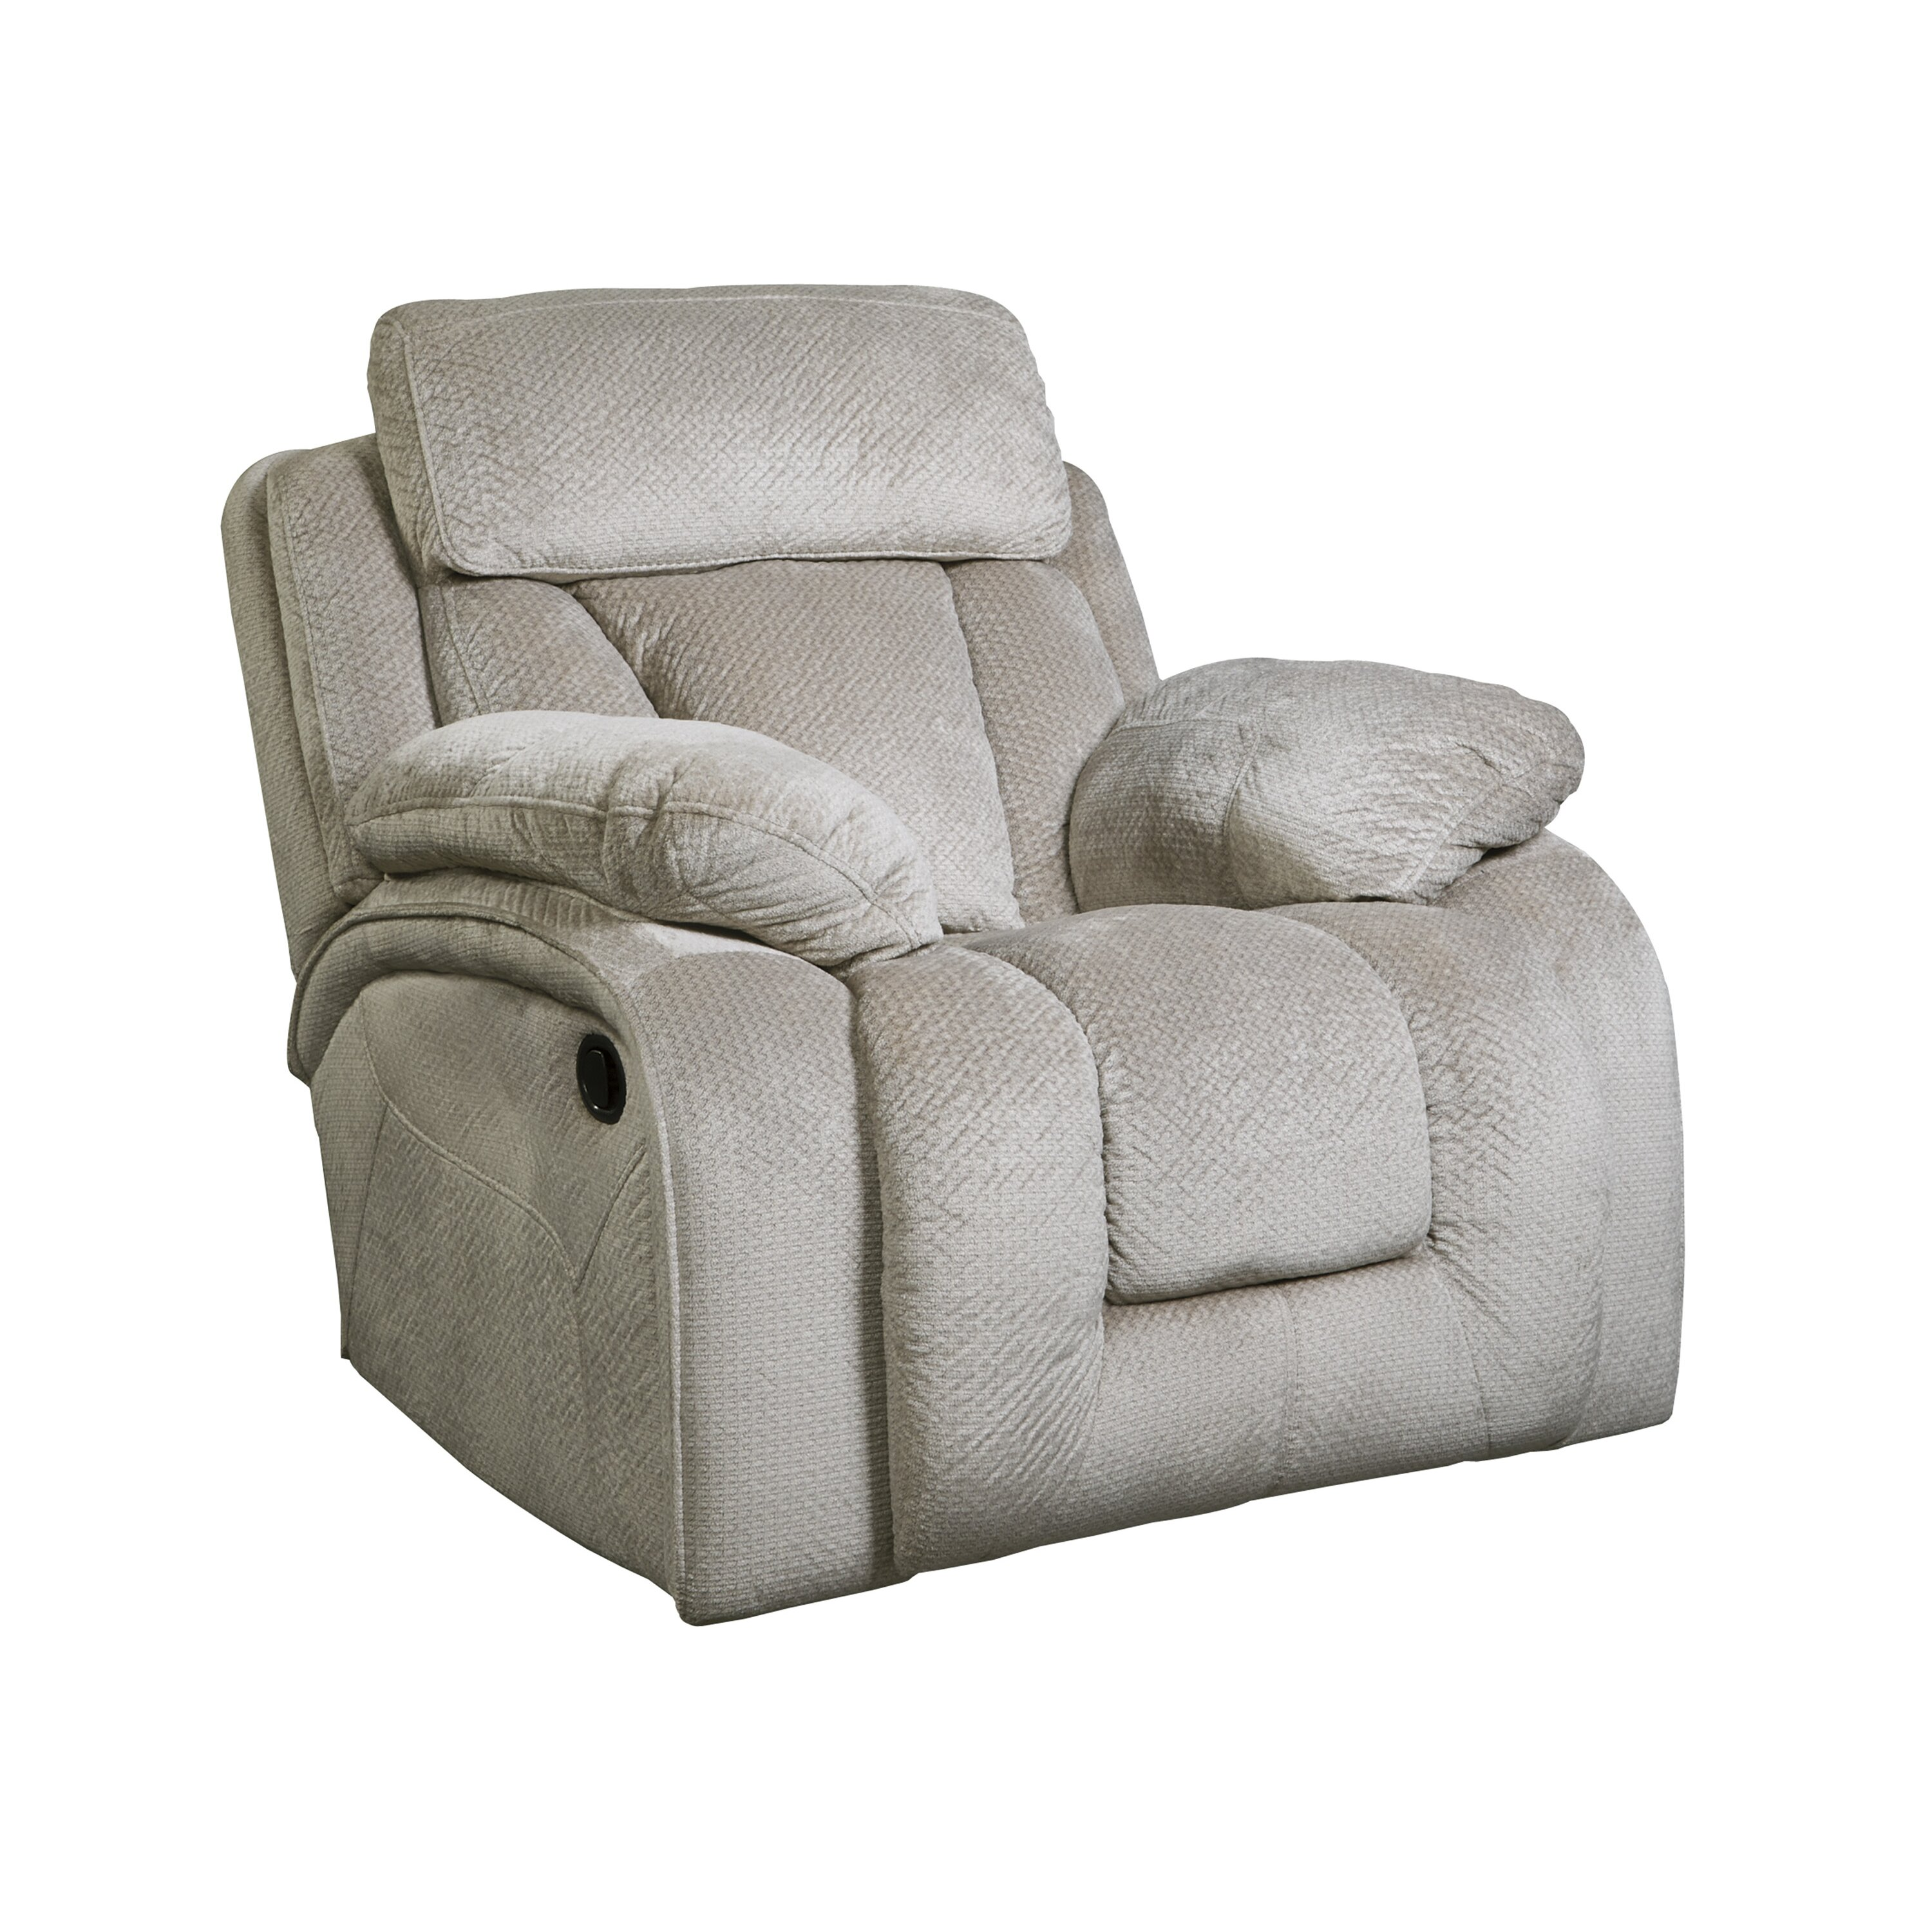 Signature Design By Ashley Rocker Recliner Reviews Wayfair